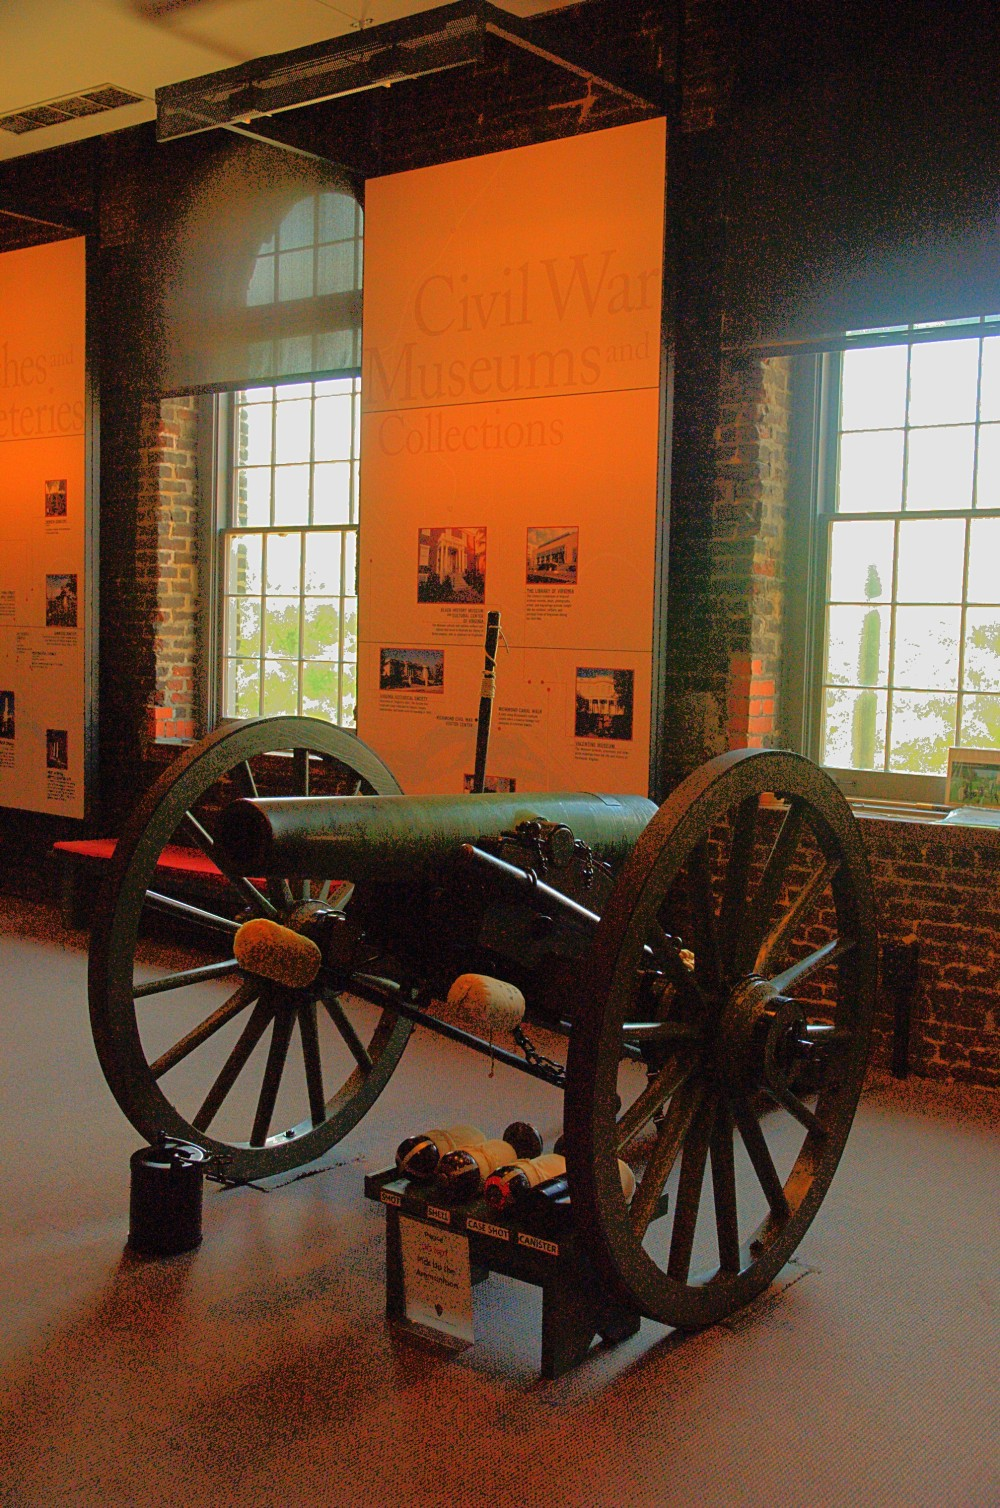 Tredegar Iron Works - American Civil War Museum